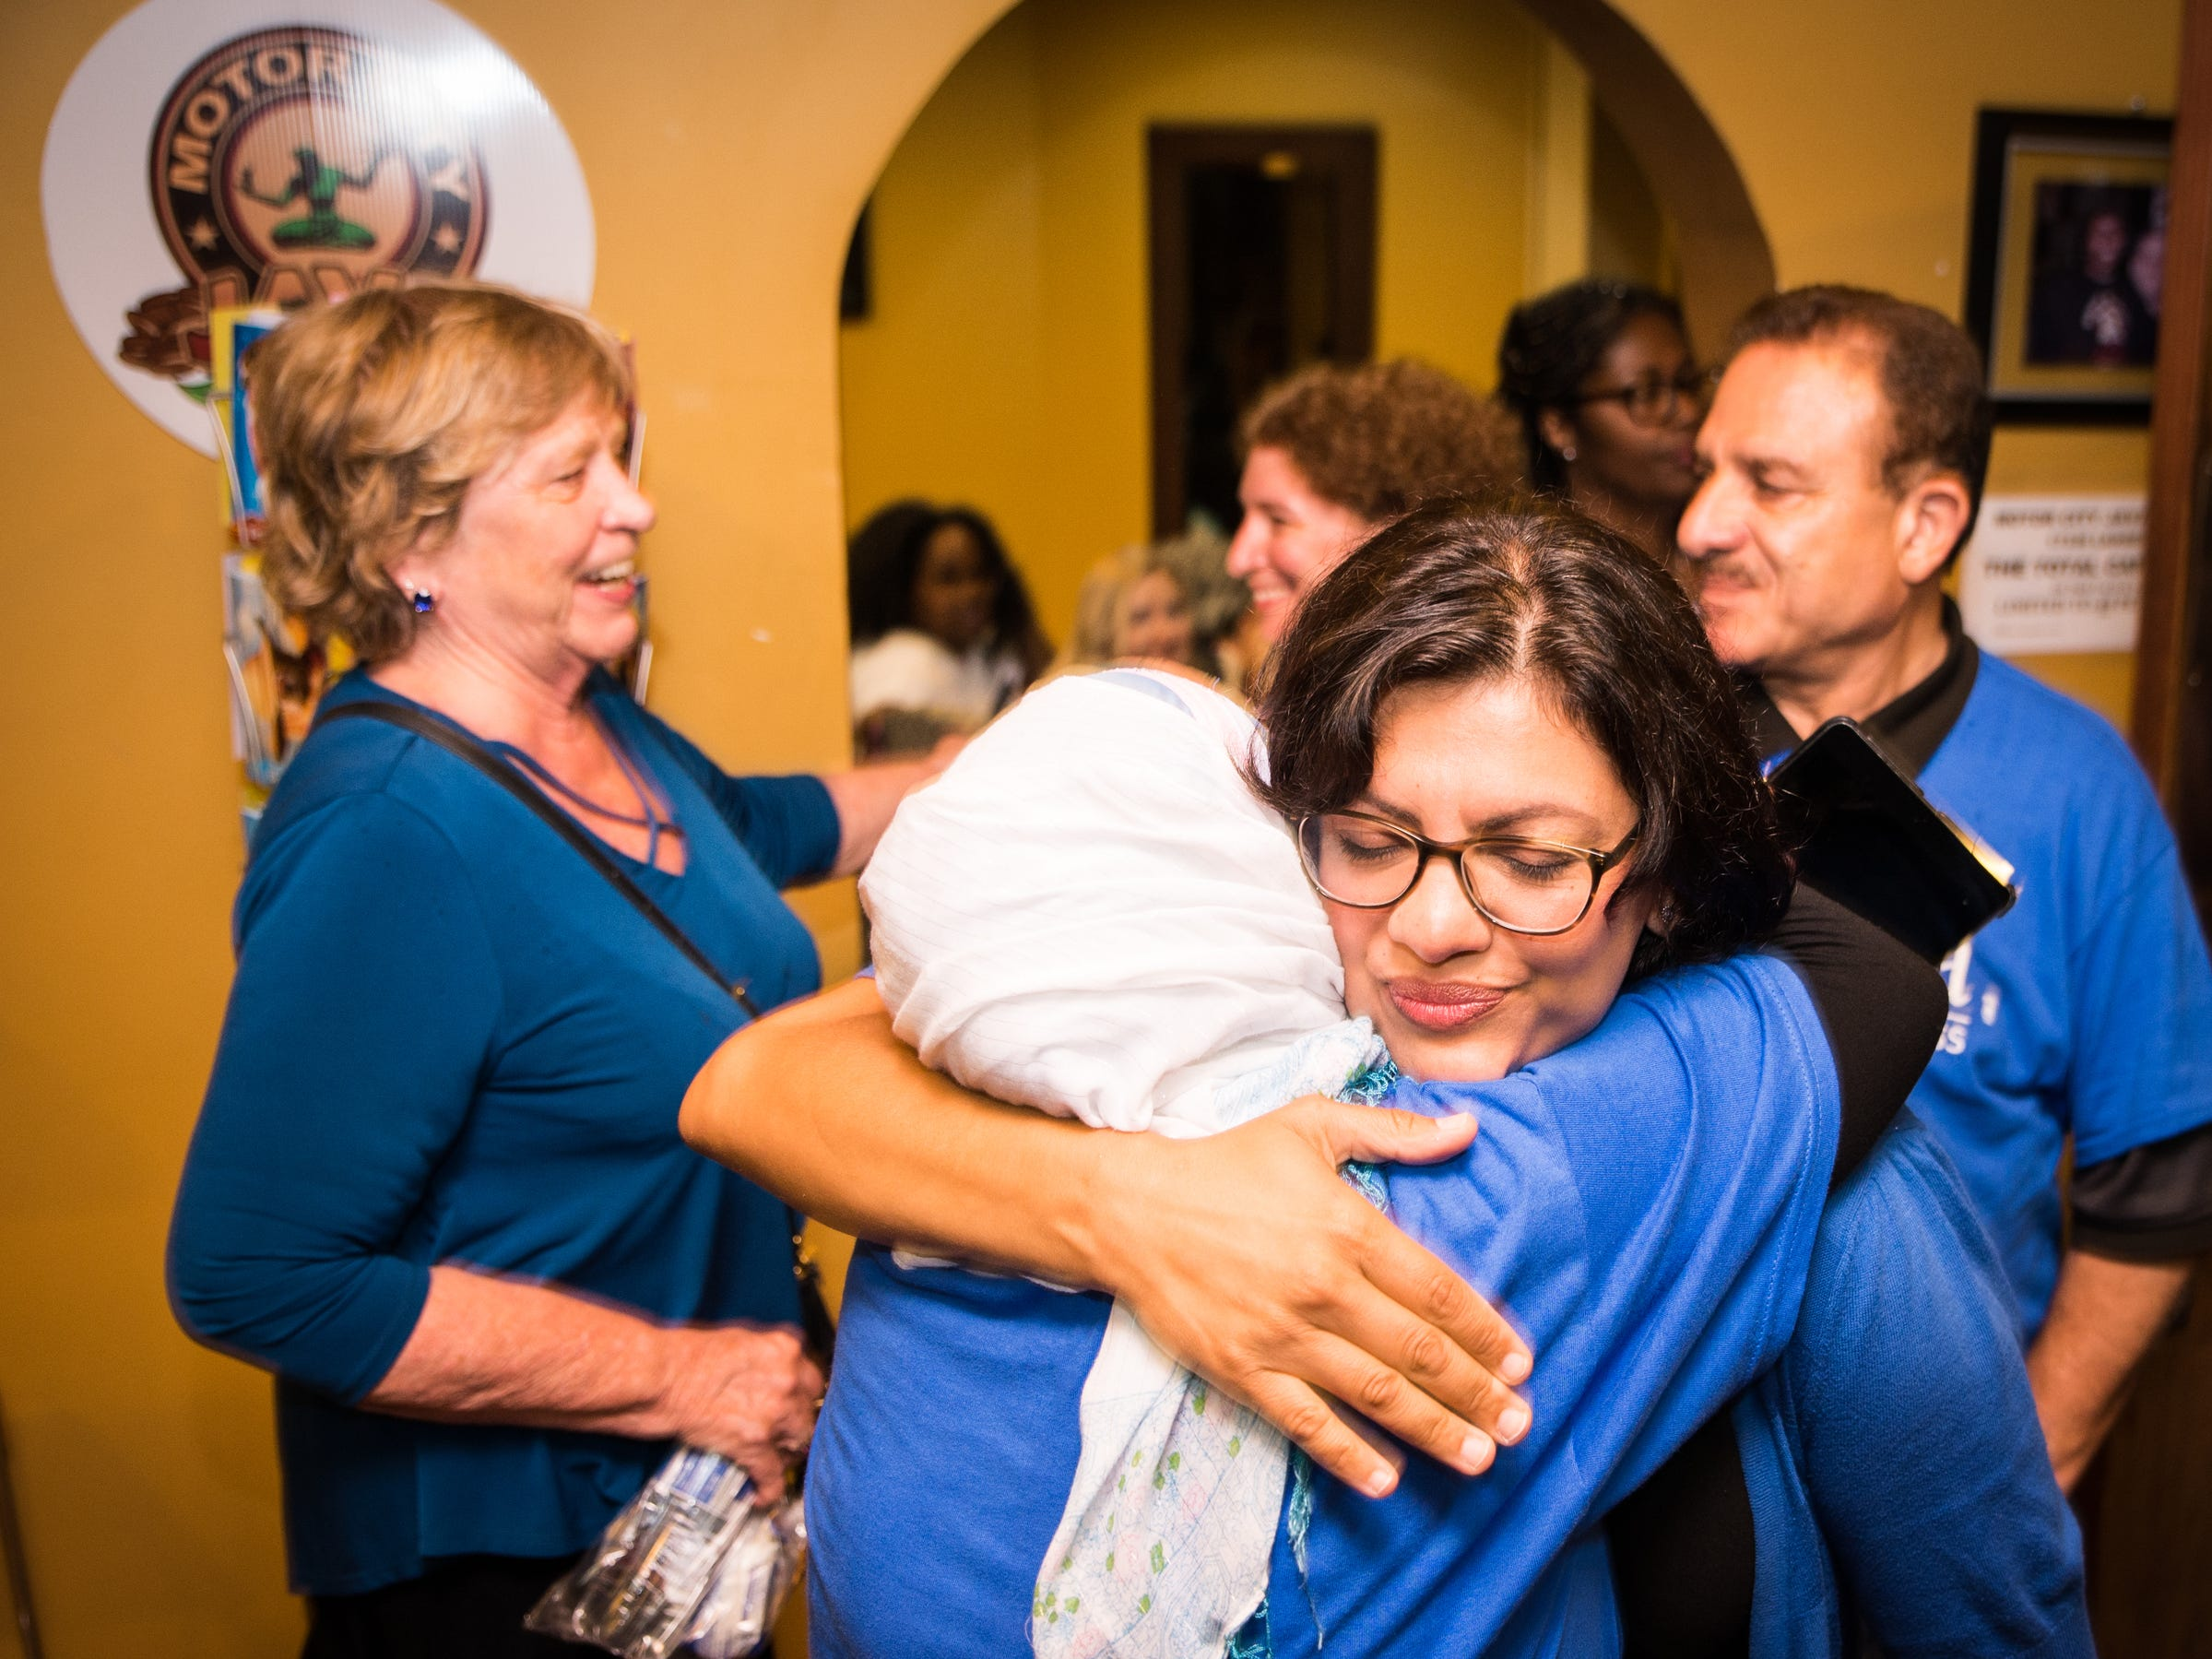 Rashida Tlaib greets supporters and family at her election night party in Northwest Detroit on Aug. 7, 2018.